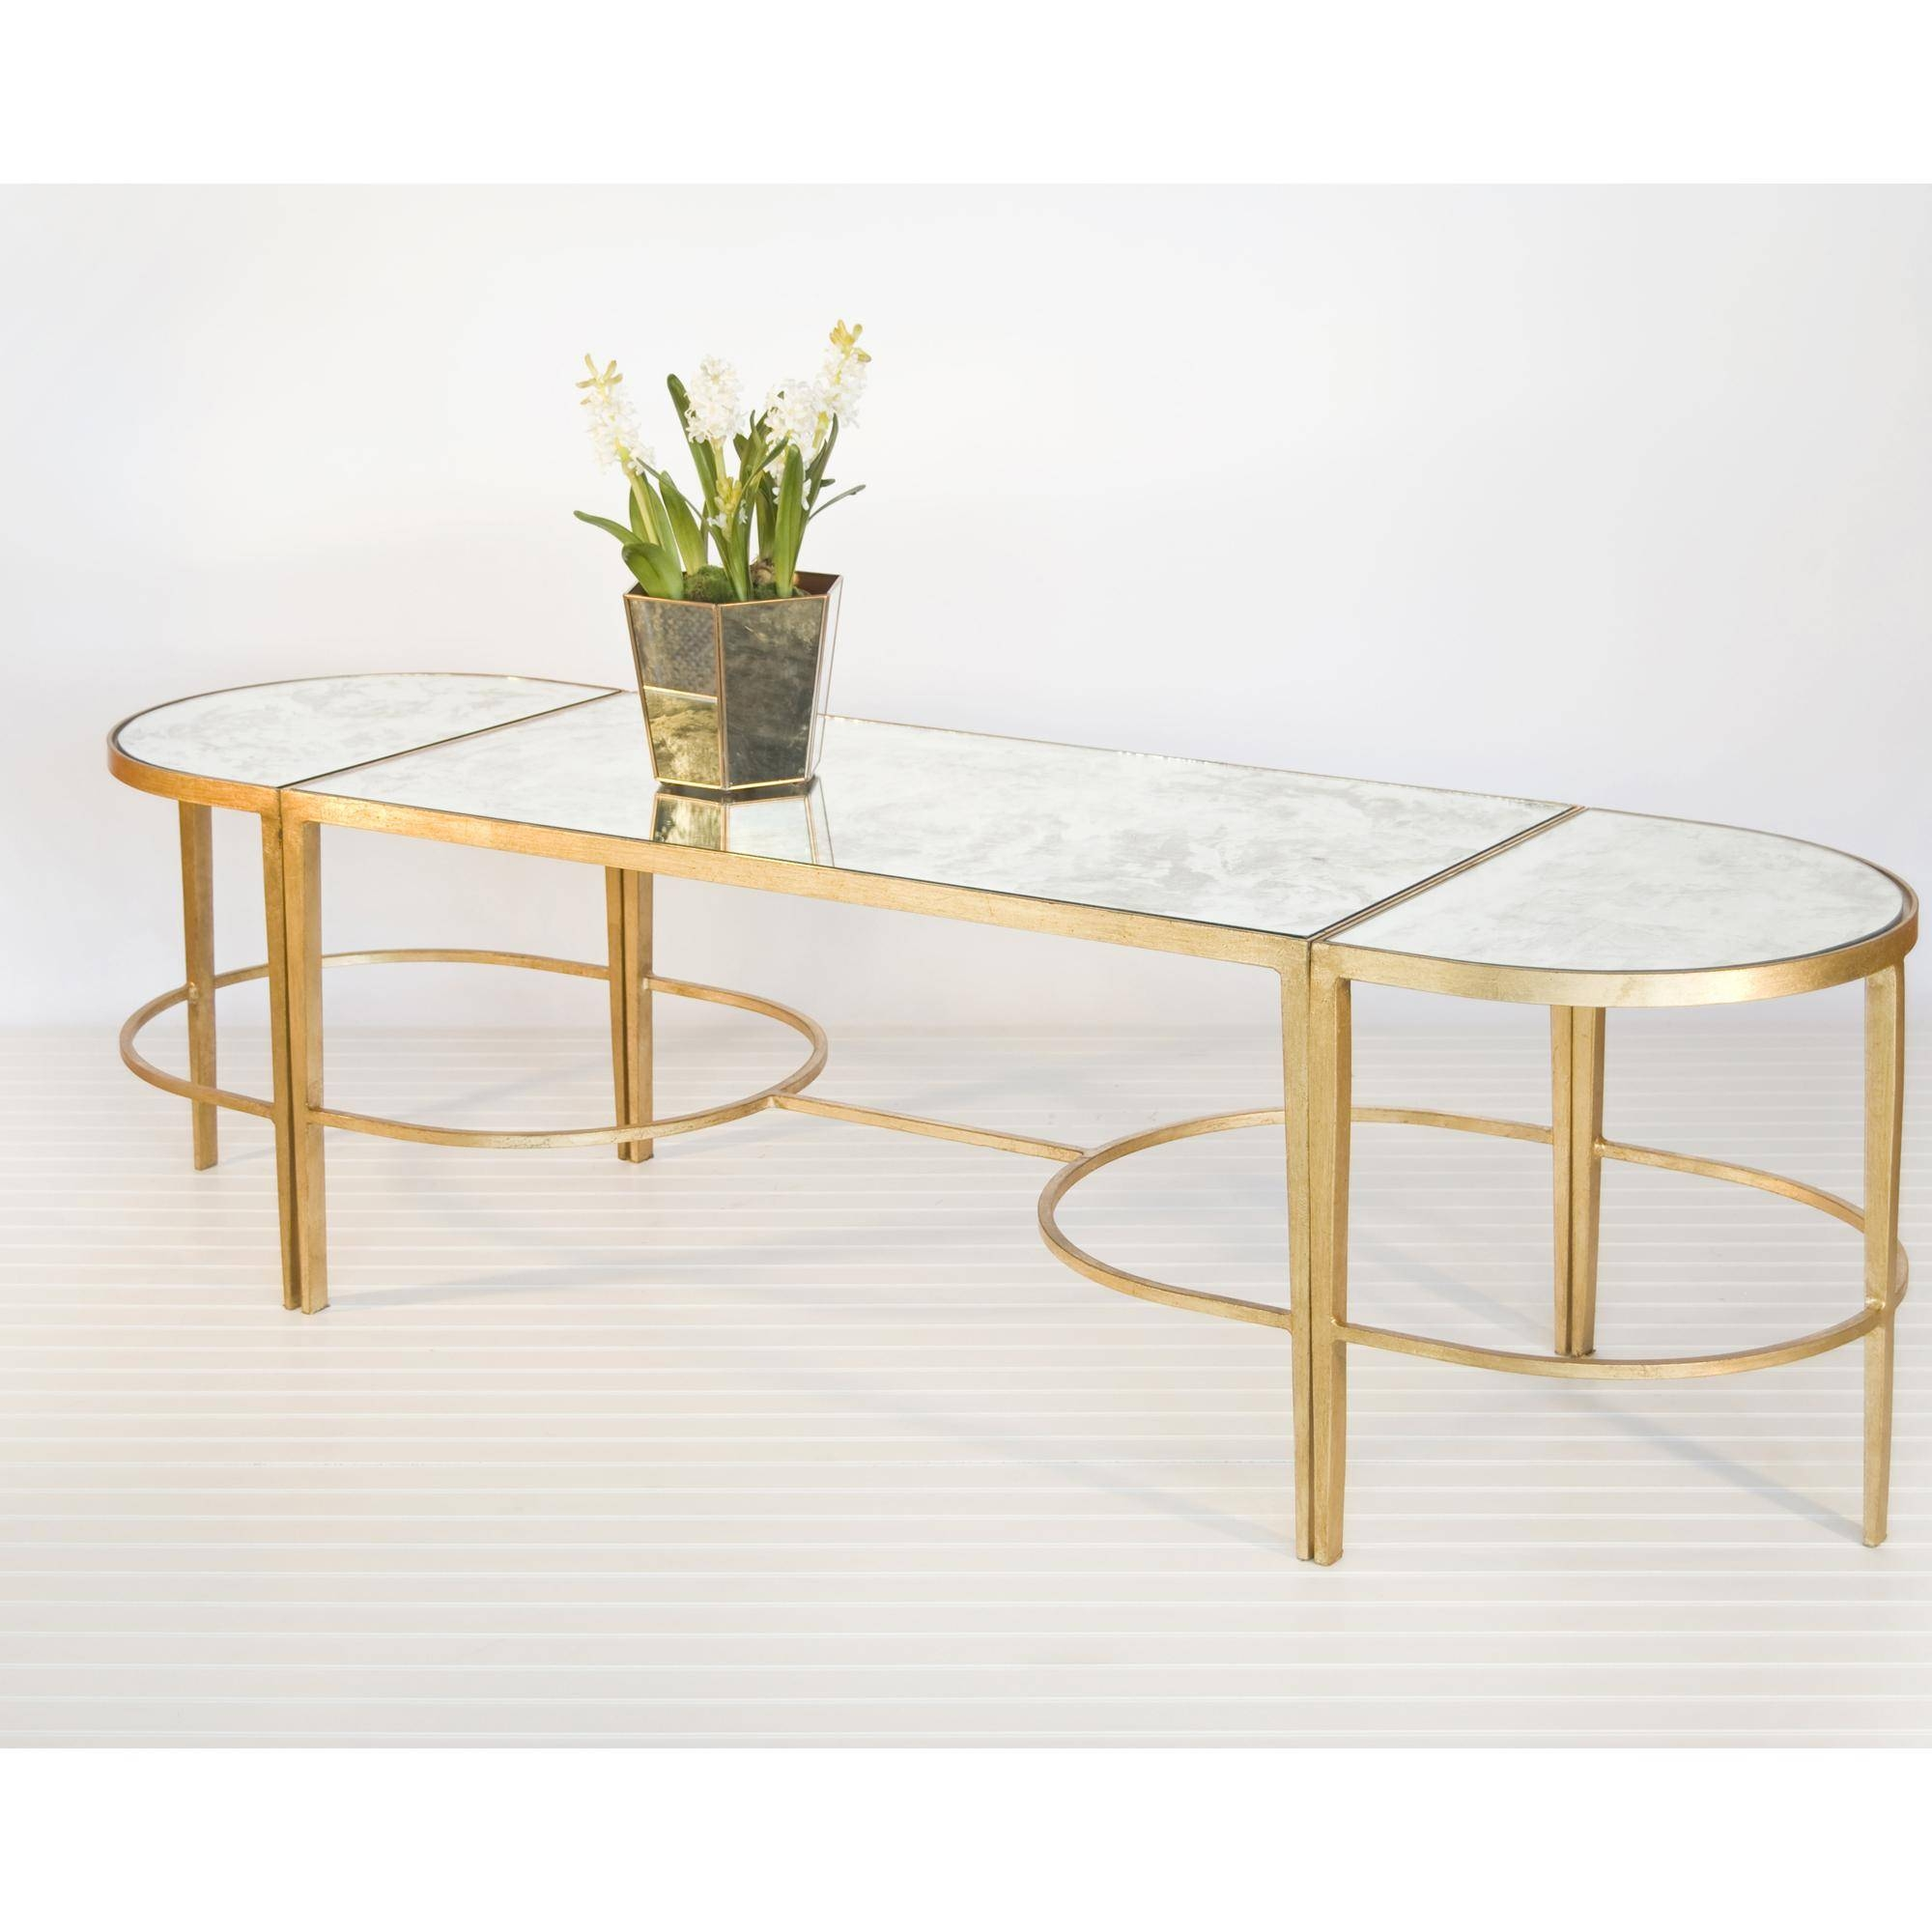 Furniture: Excellent Retro Classic Mirrored Coffee Table With for Retro White Coffee Tables (Image 14 of 30)